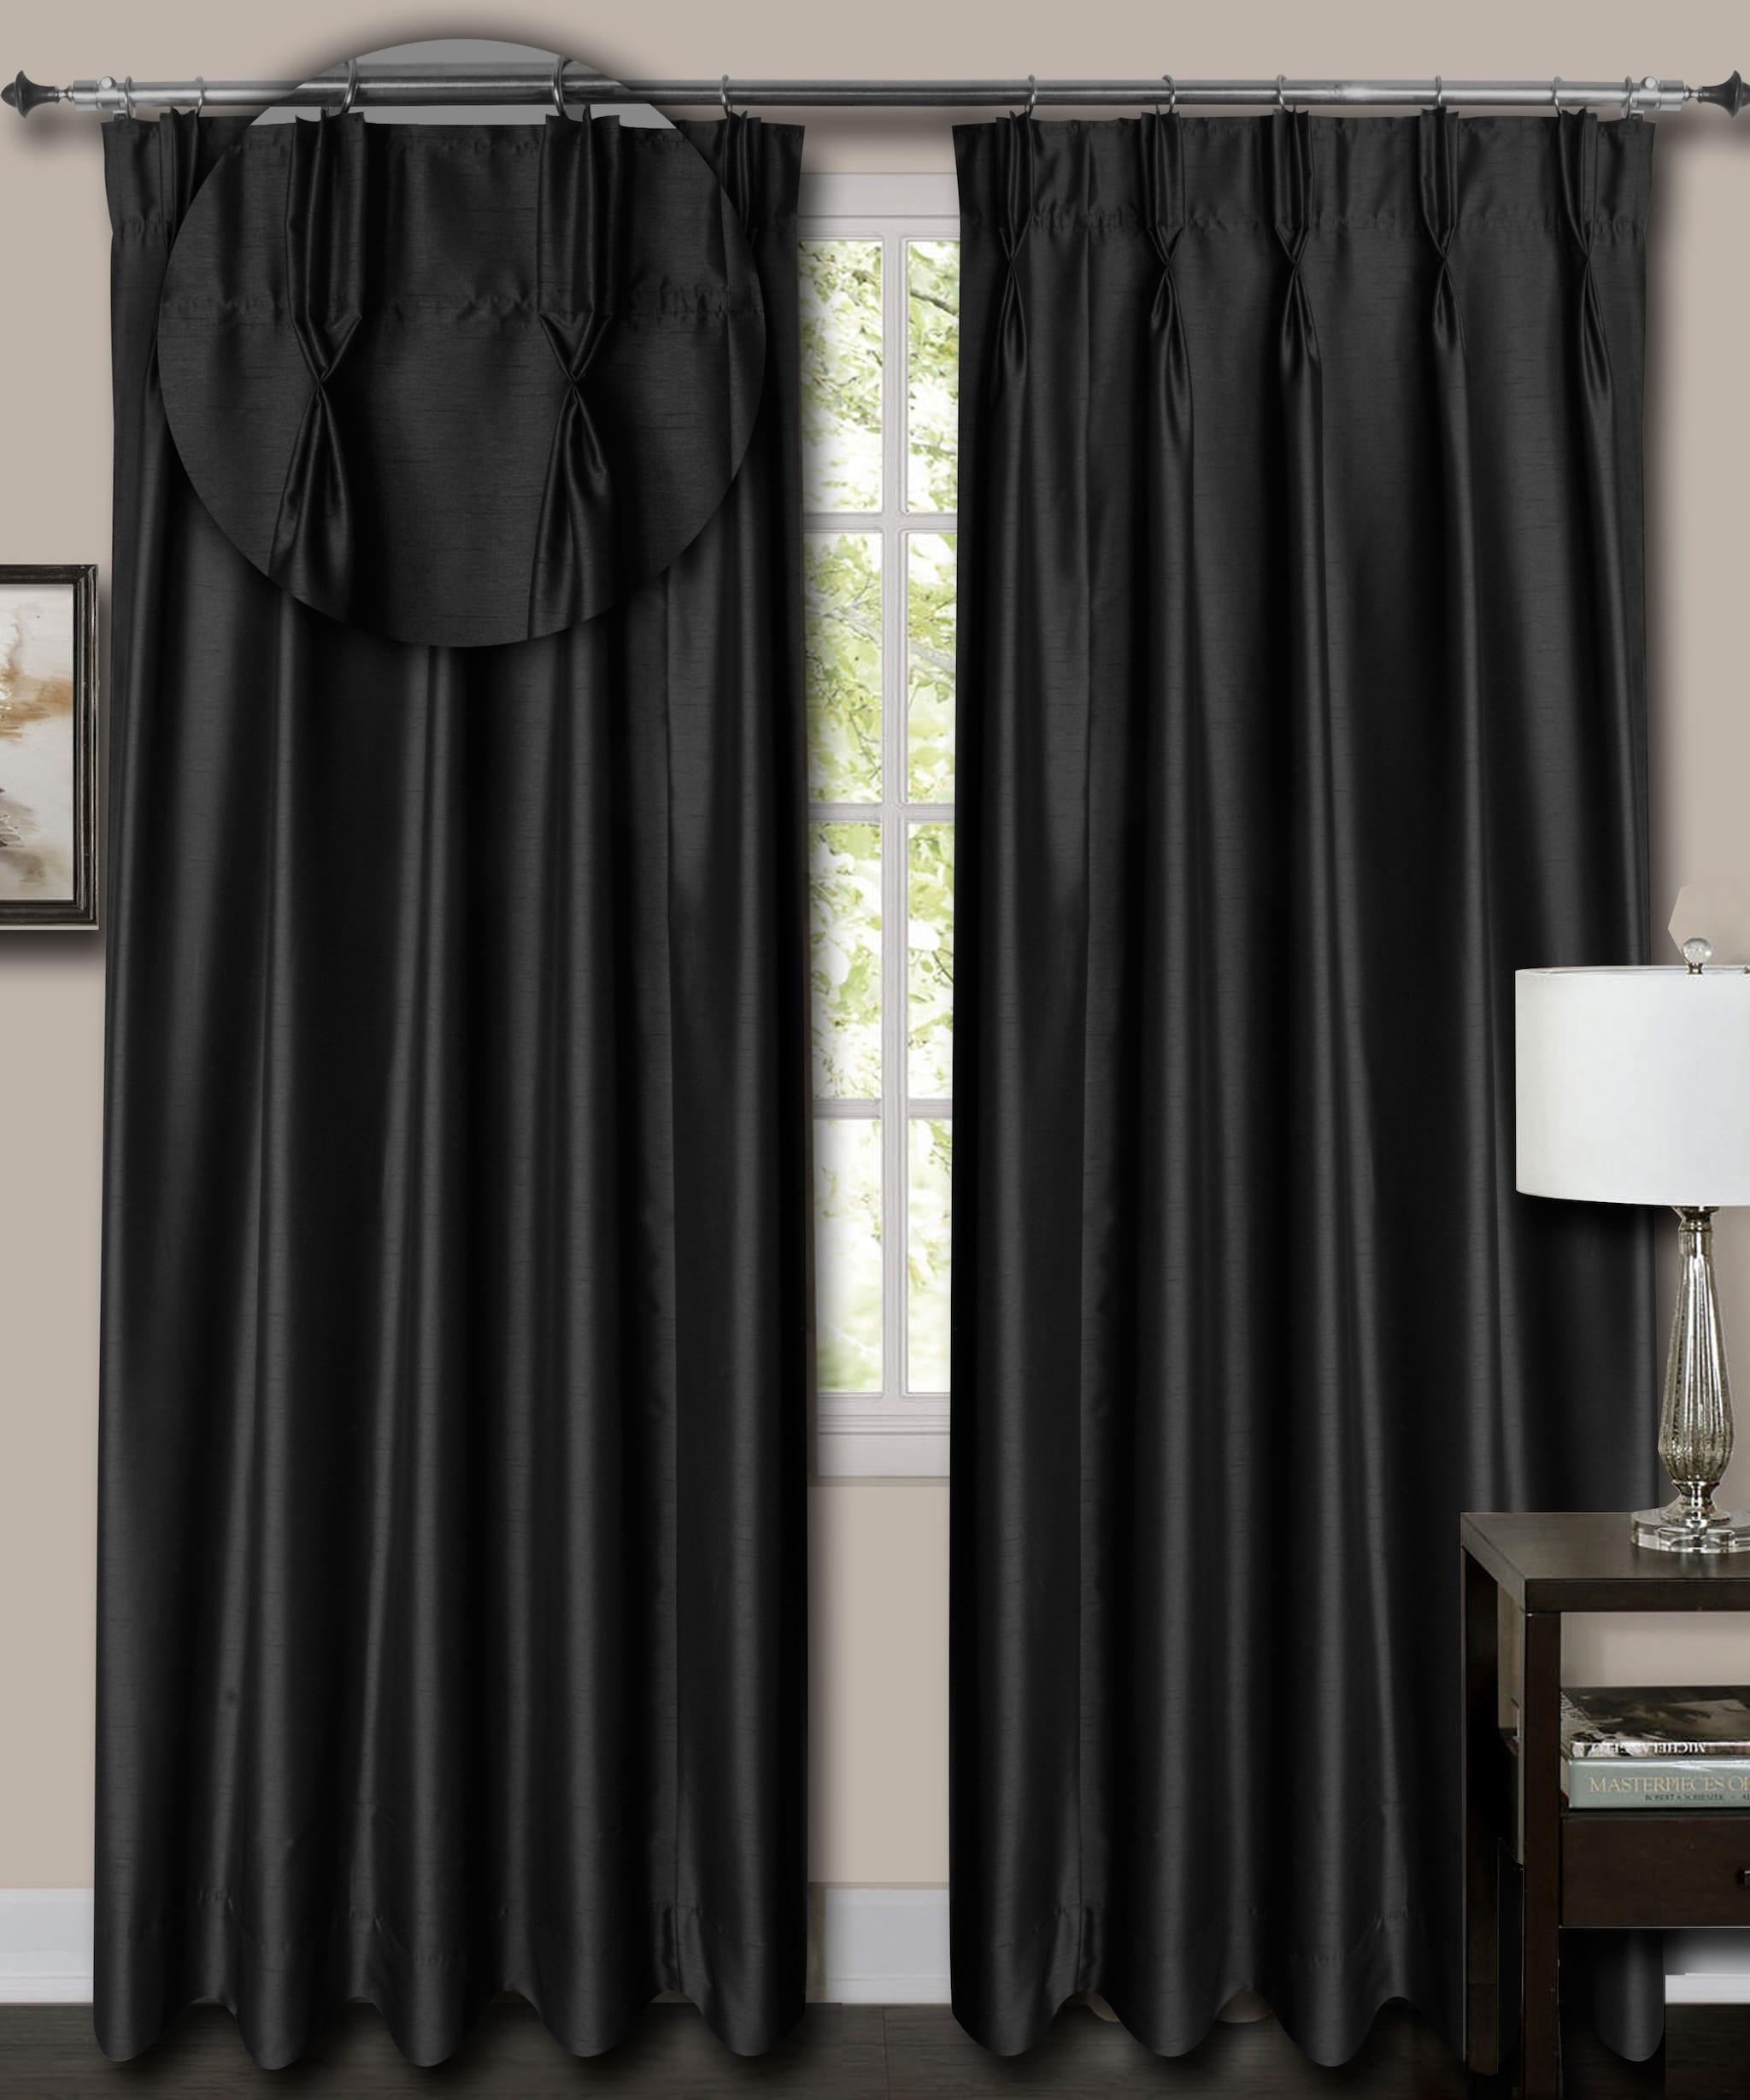 """French Pleat Top Black Faux Silk Dupioni Curtains. (52"""" Wide,7 Feet Long,Blackout Lining)"""